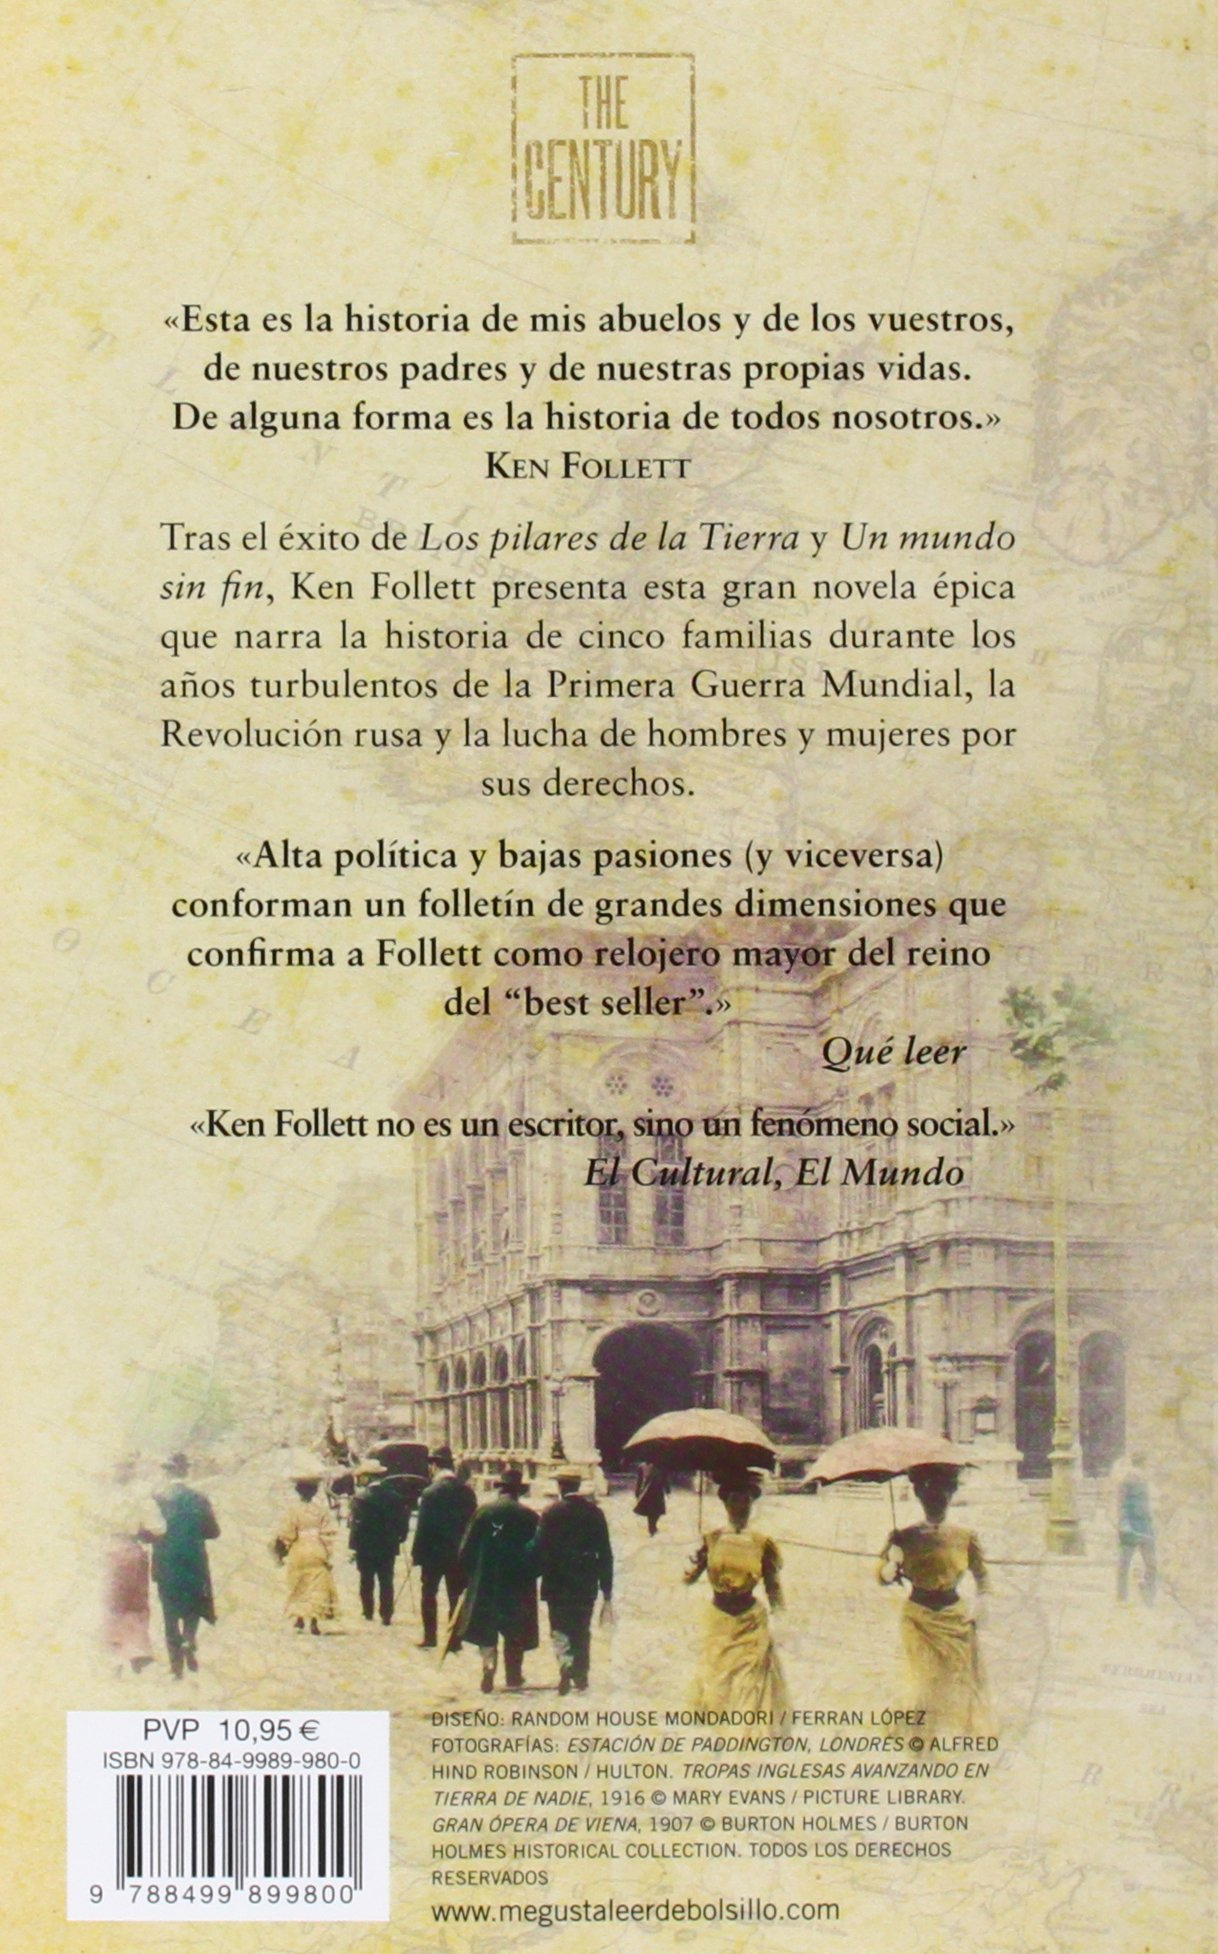 La caída de los gigantes (The Century 1): Amazon.es: Ken Follett, Anuvela;:  Libros